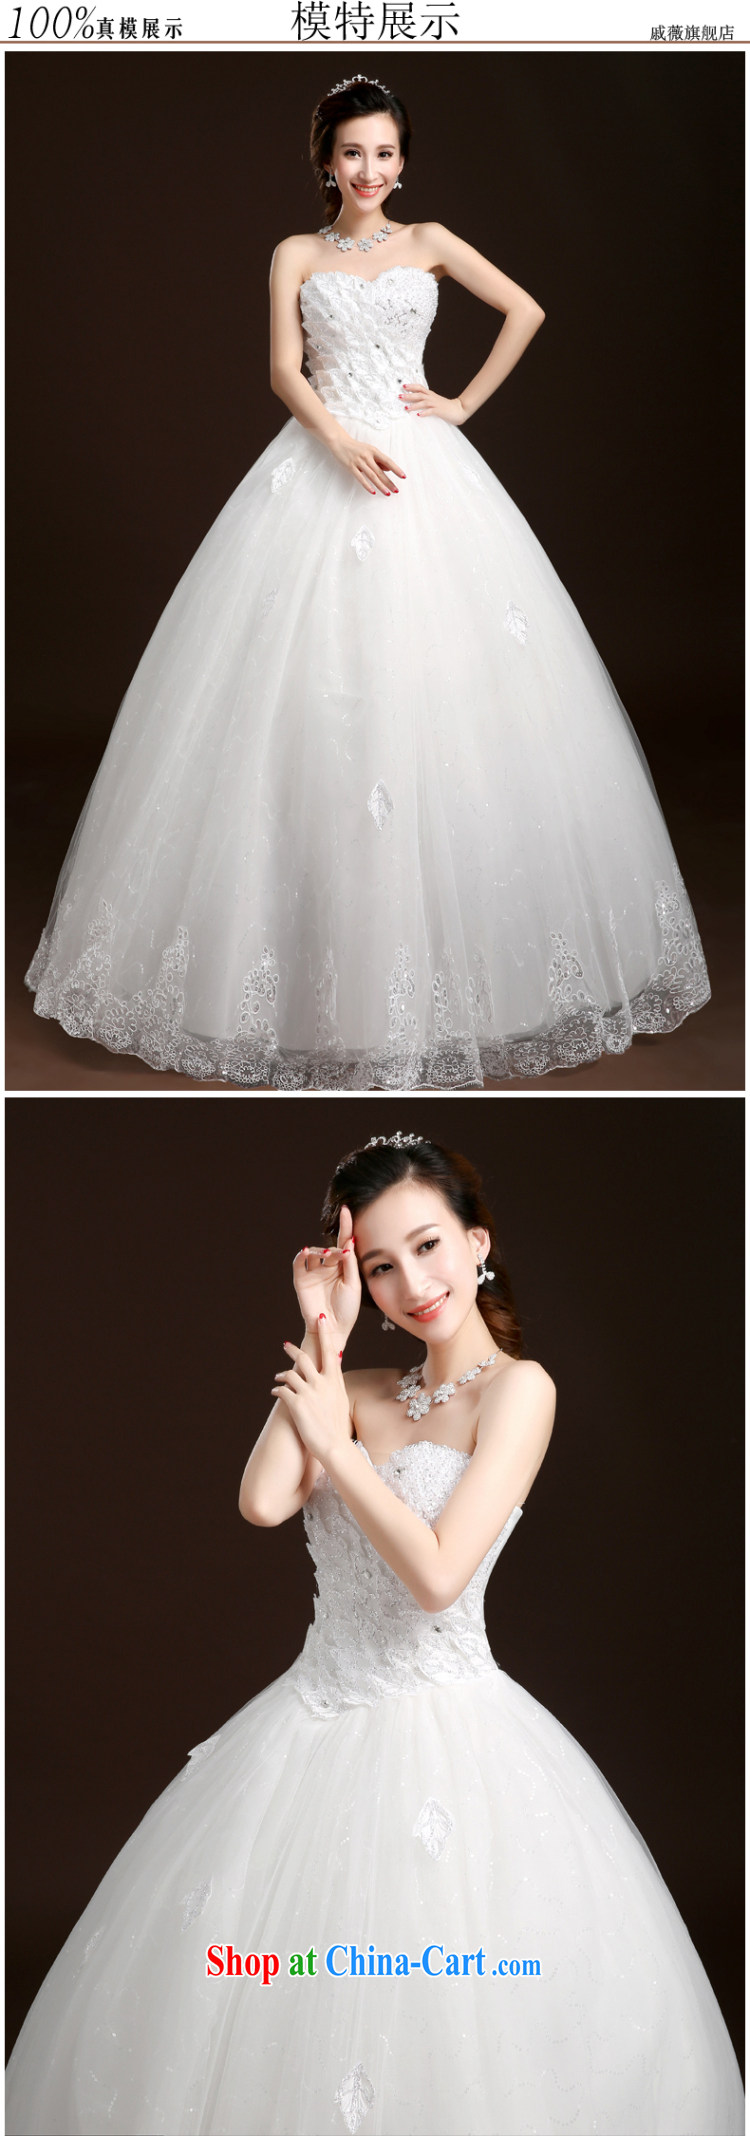 Qi wei summer 2015 new wedding dresses with wedding Mary Magdalene chest wedding band bridal wedding wedding dresses lace wedding white XL pictures, price, brand platters! Elections are good character, the national distribution, so why buy now enjoy more preferential! Health